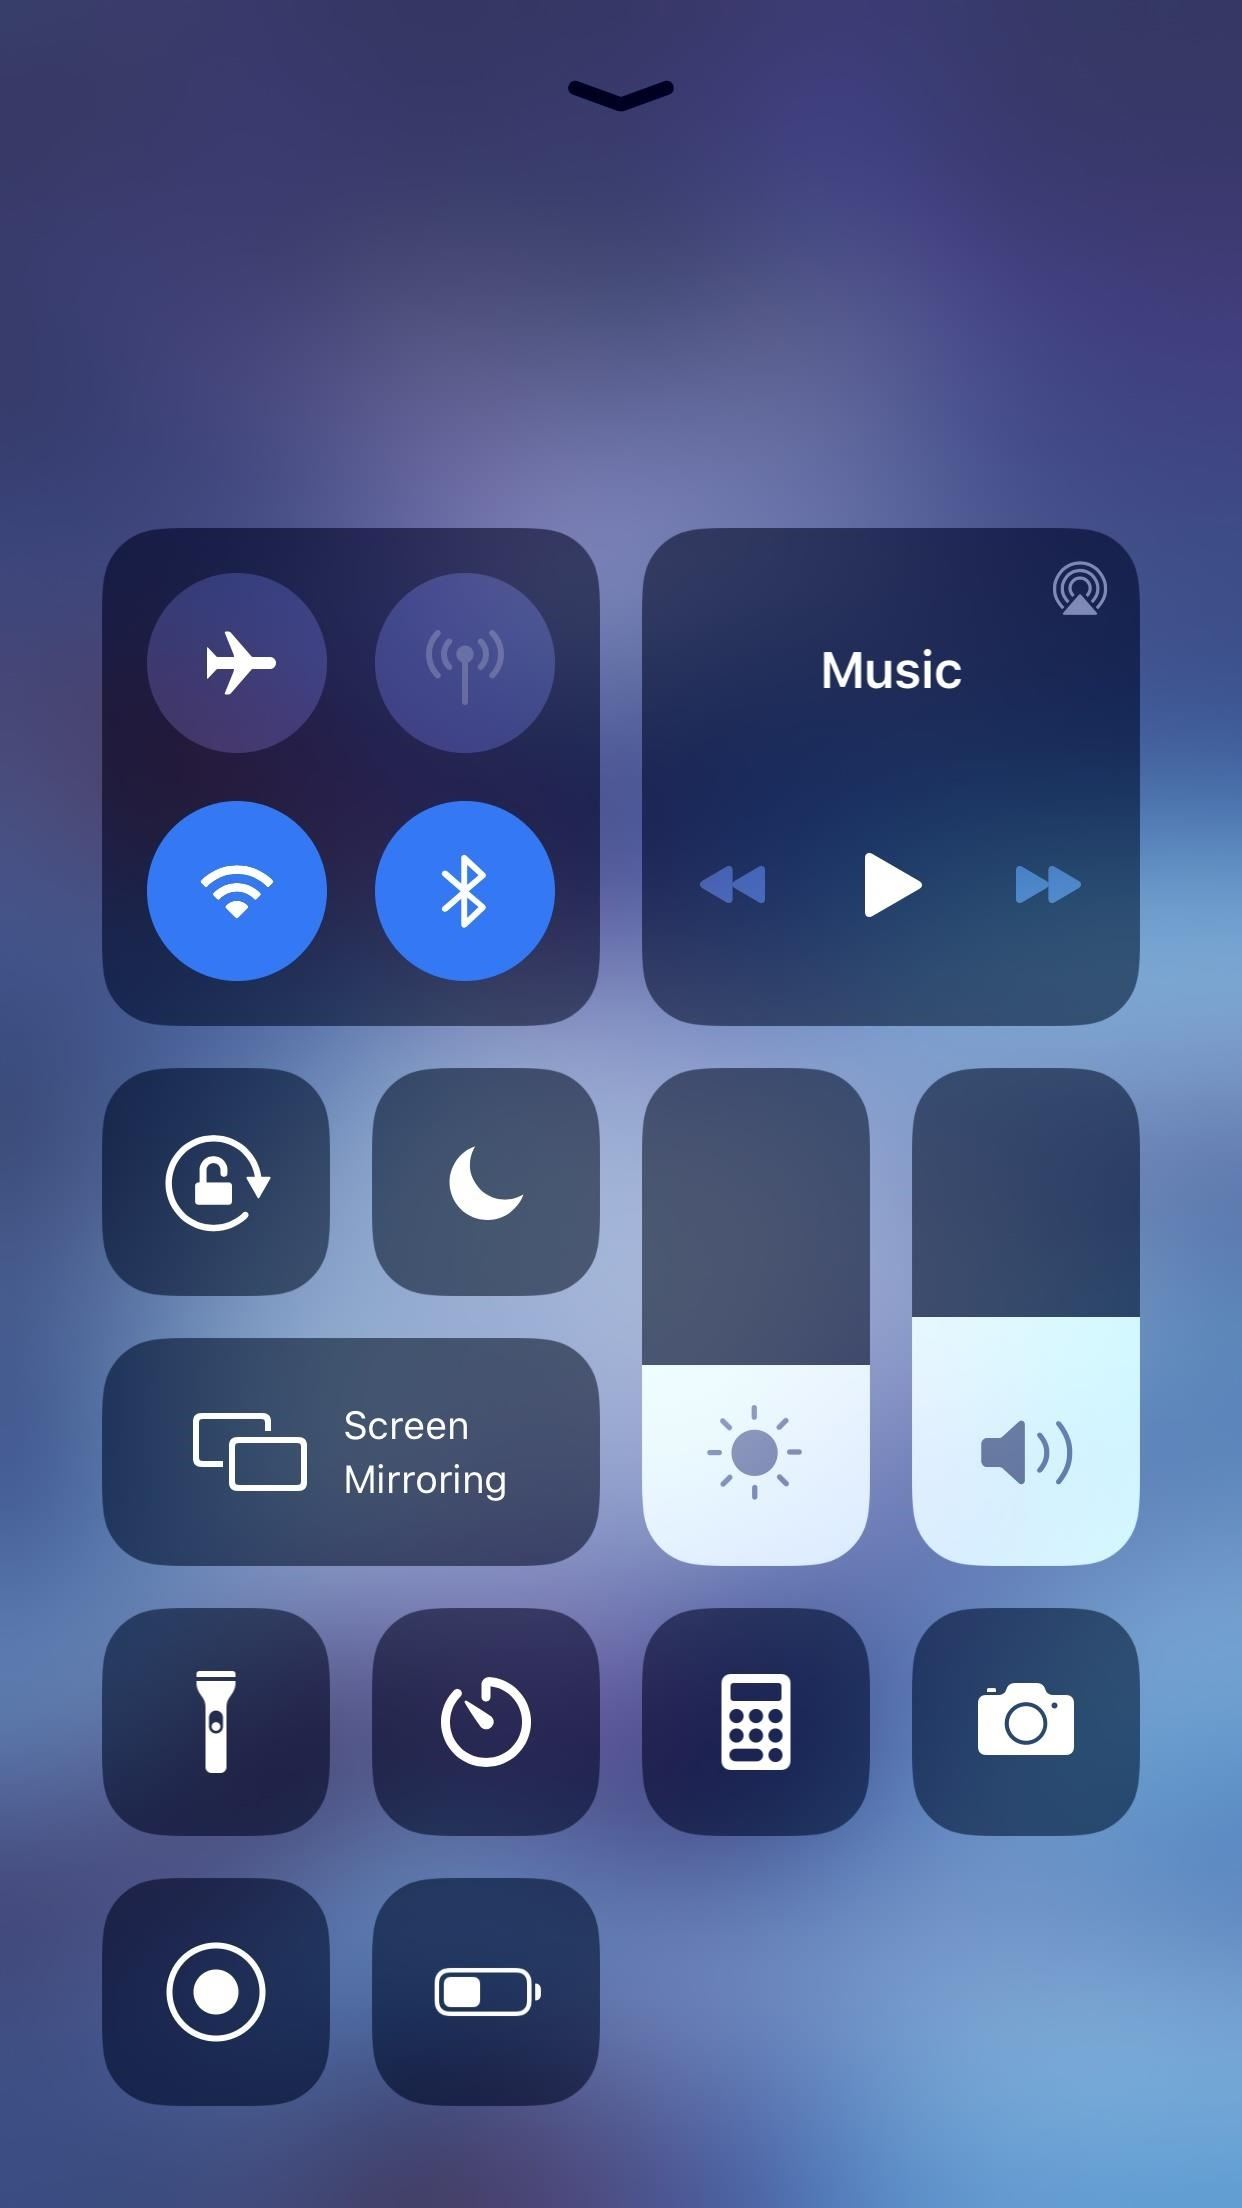 14 New functions and changes for iPhone in iOS 13.4